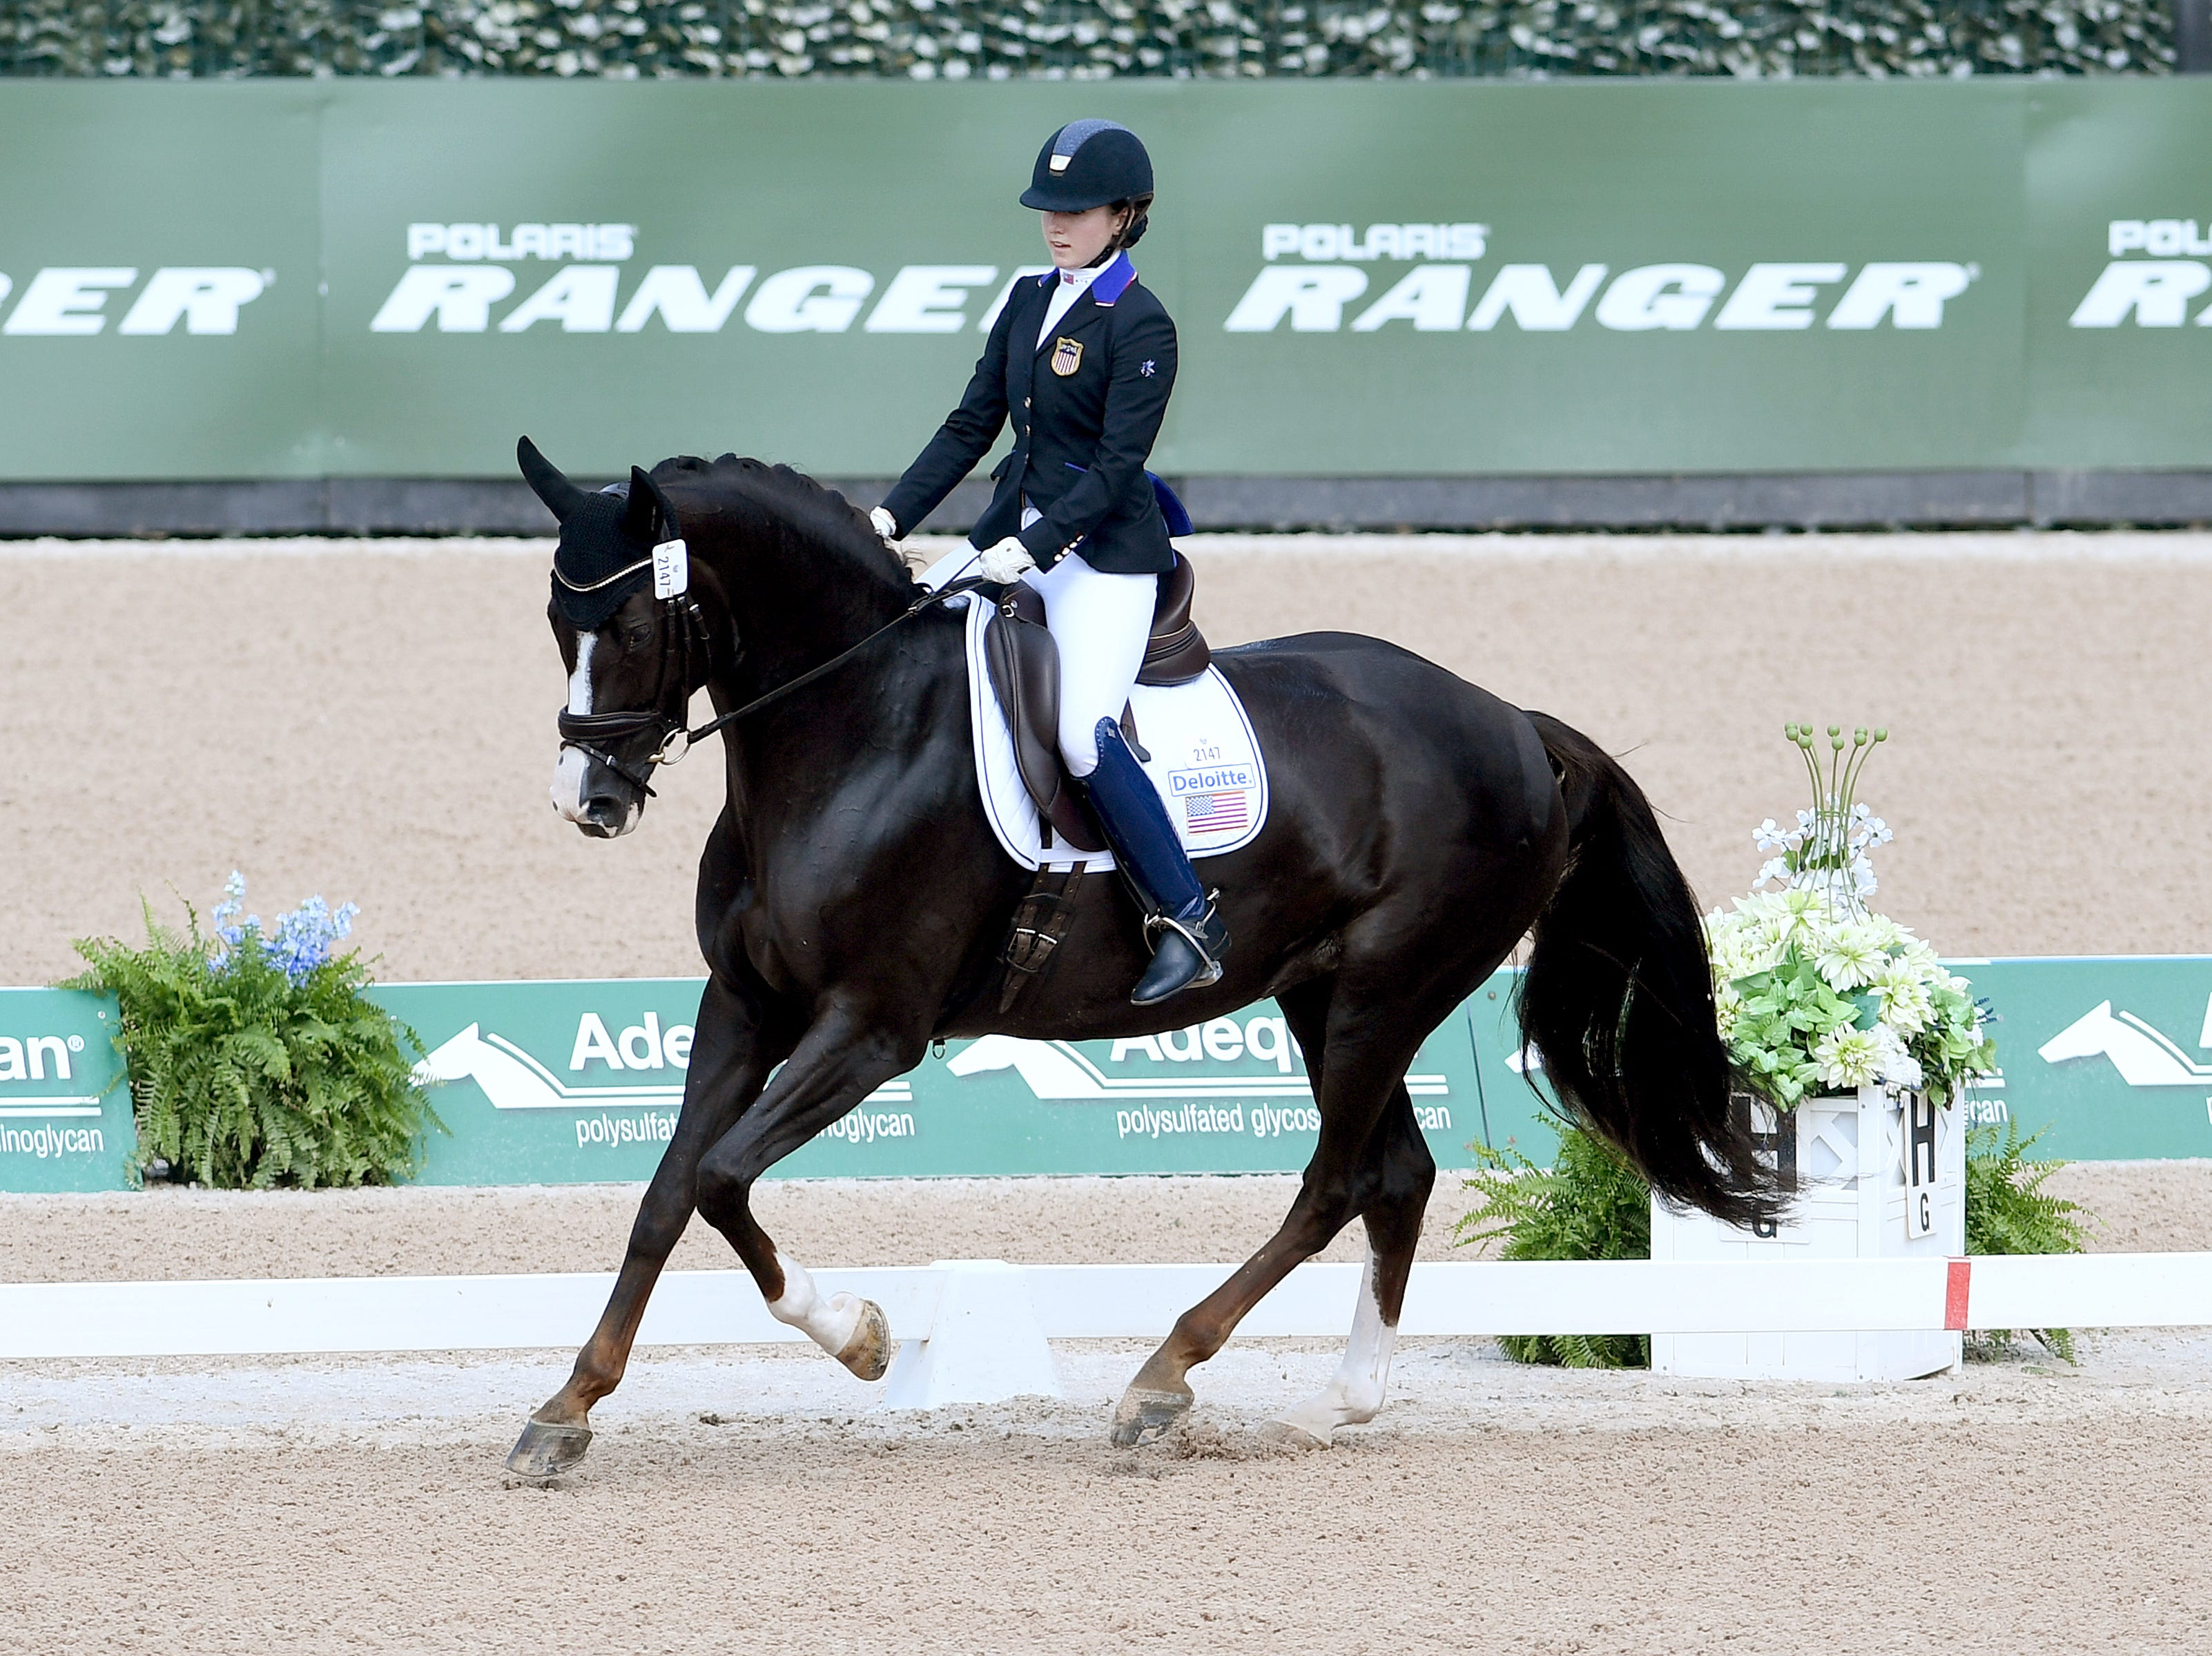 American Angela Peavy performs in the Para-dressage event of the FEI World Equestrian Games at the Tryon International Equestrian Center on Sept. 20, 2018. Whitaker created the choreography for Peavy's freestyle competition.